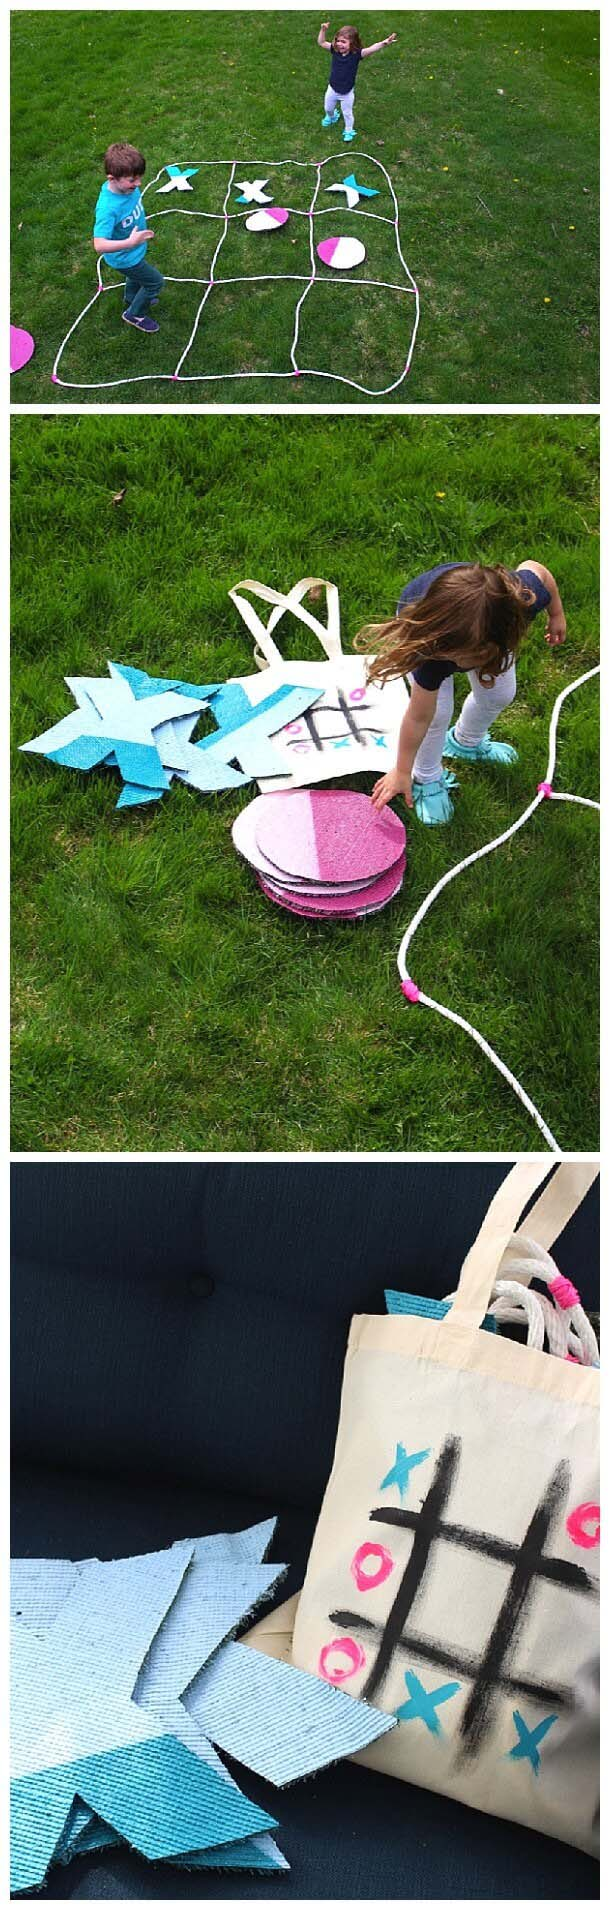 Pack and Carry Tic-Tac-Toe Set #diybackyardgames #outdoorgames #decorhomeideas